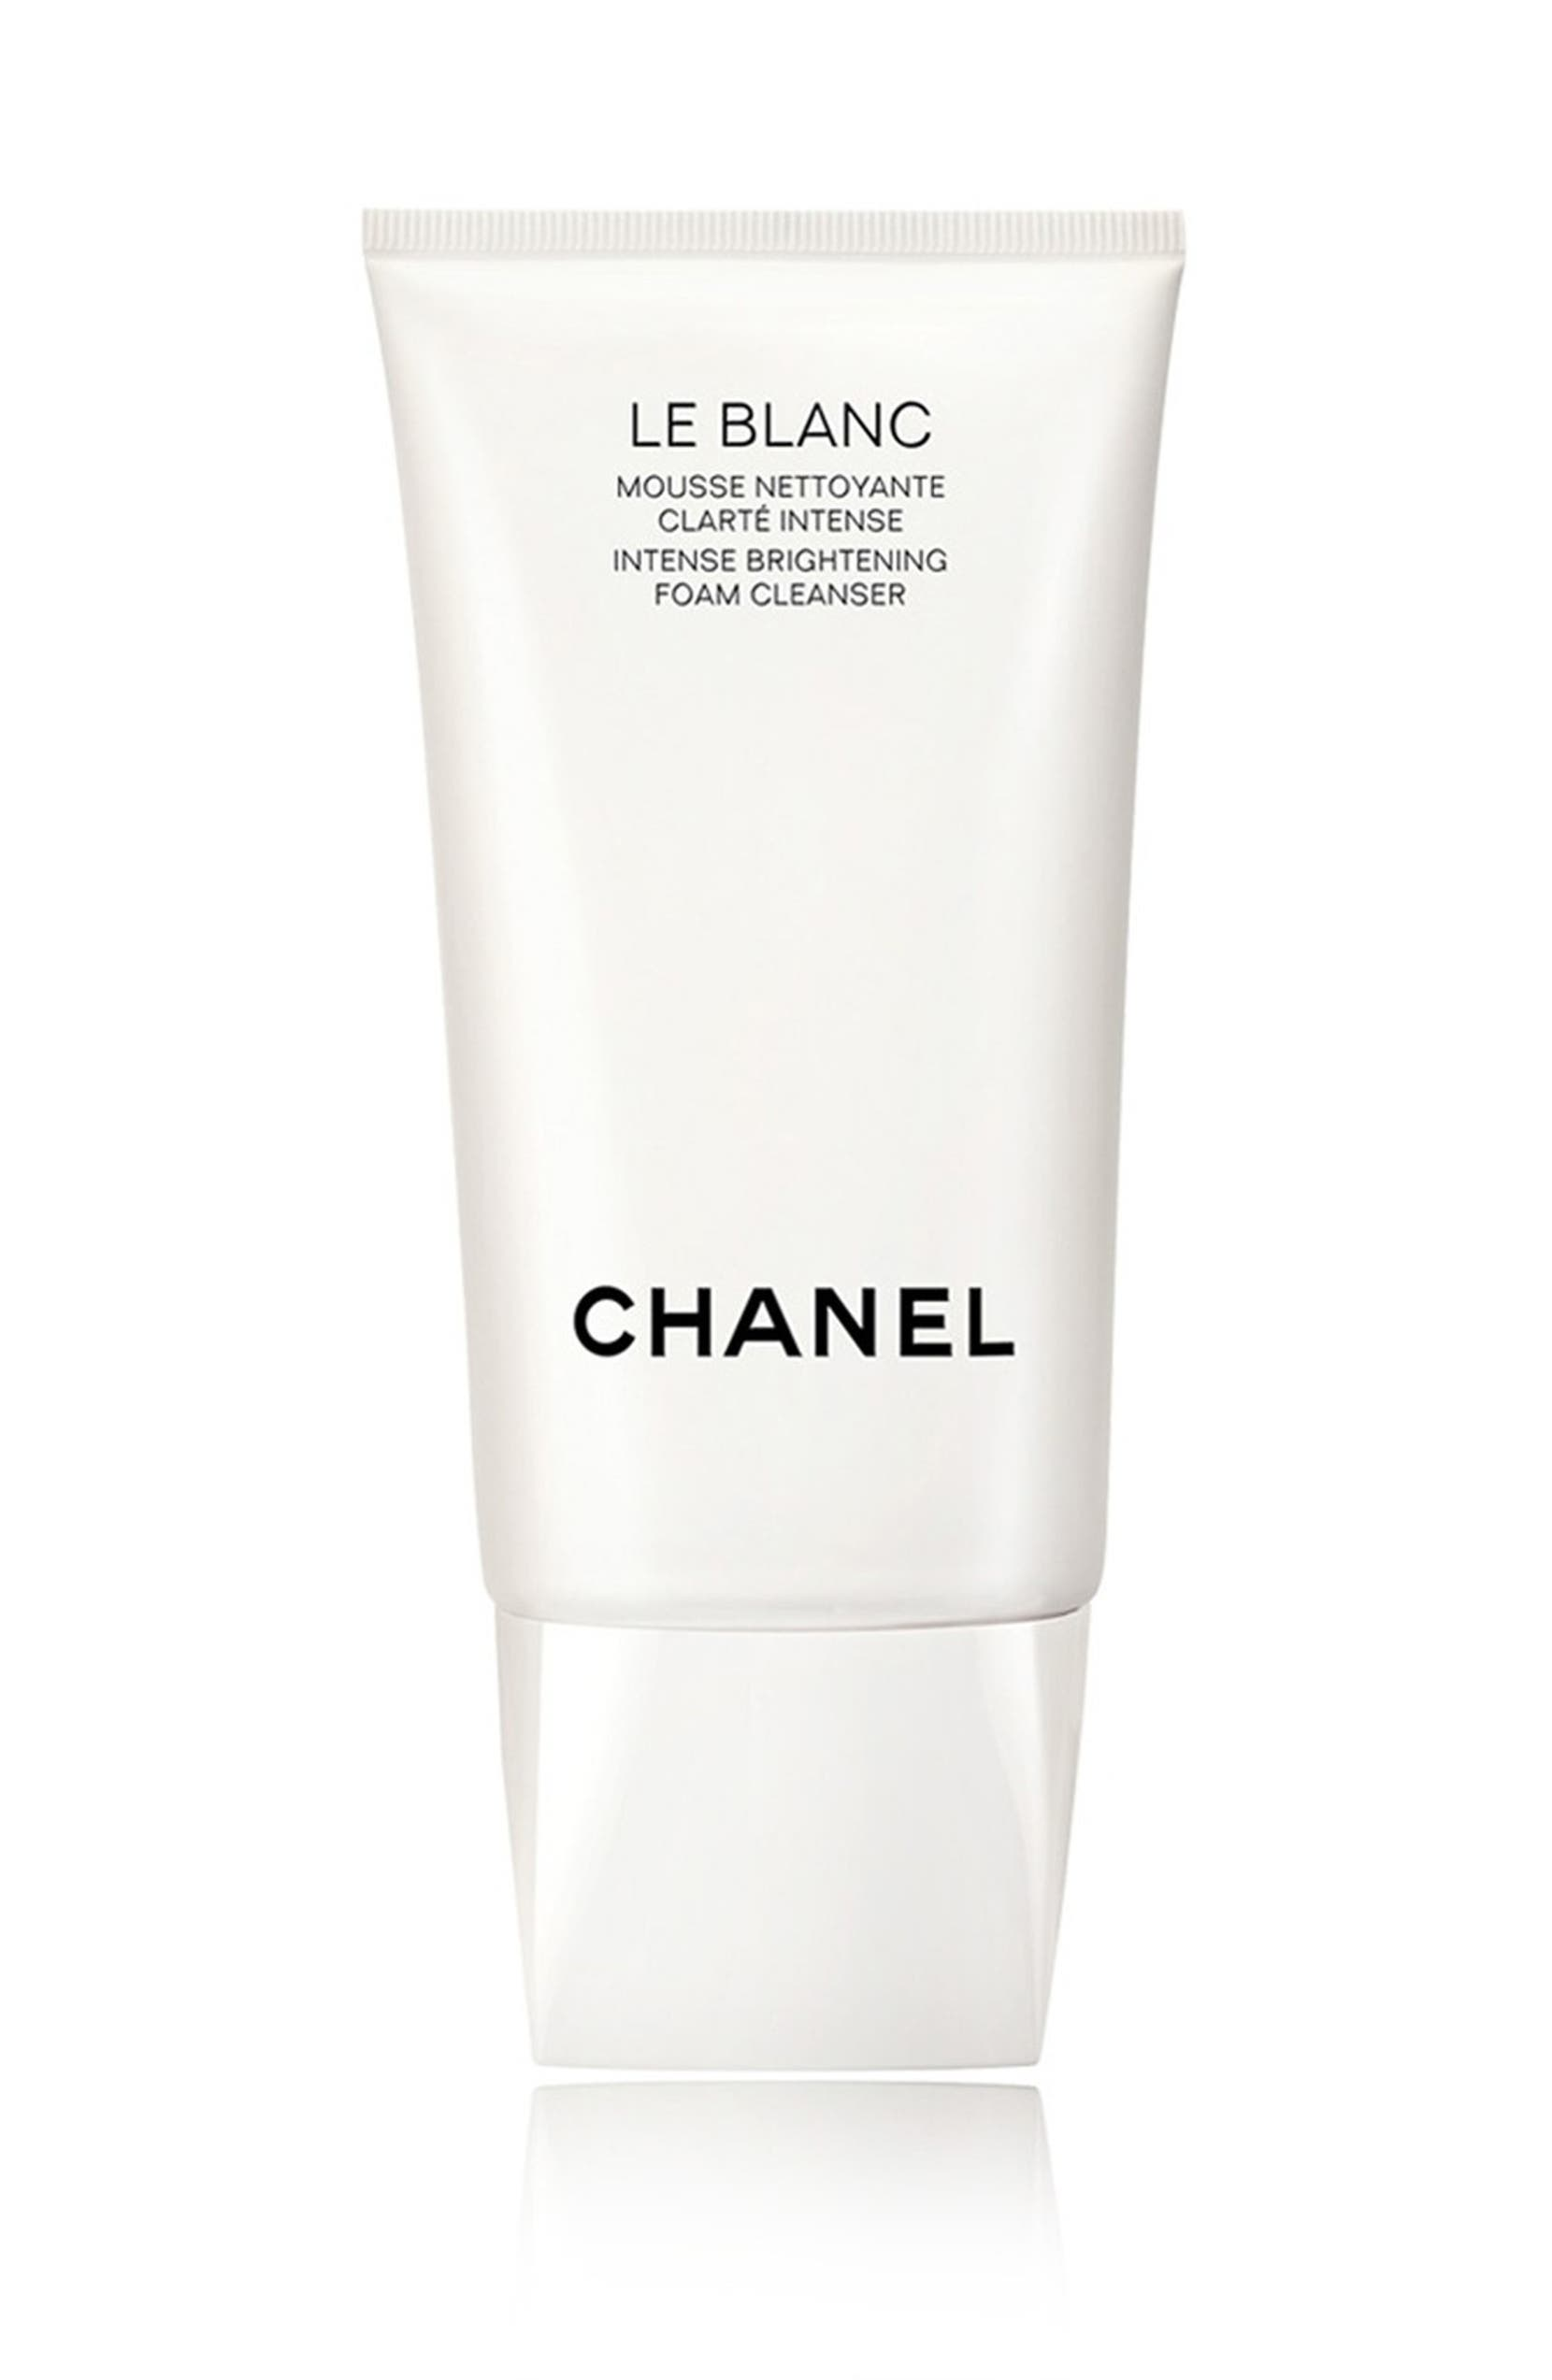 CHANEL LE BLANC Intense Brightening Foam Cleanser  999e34ab8481